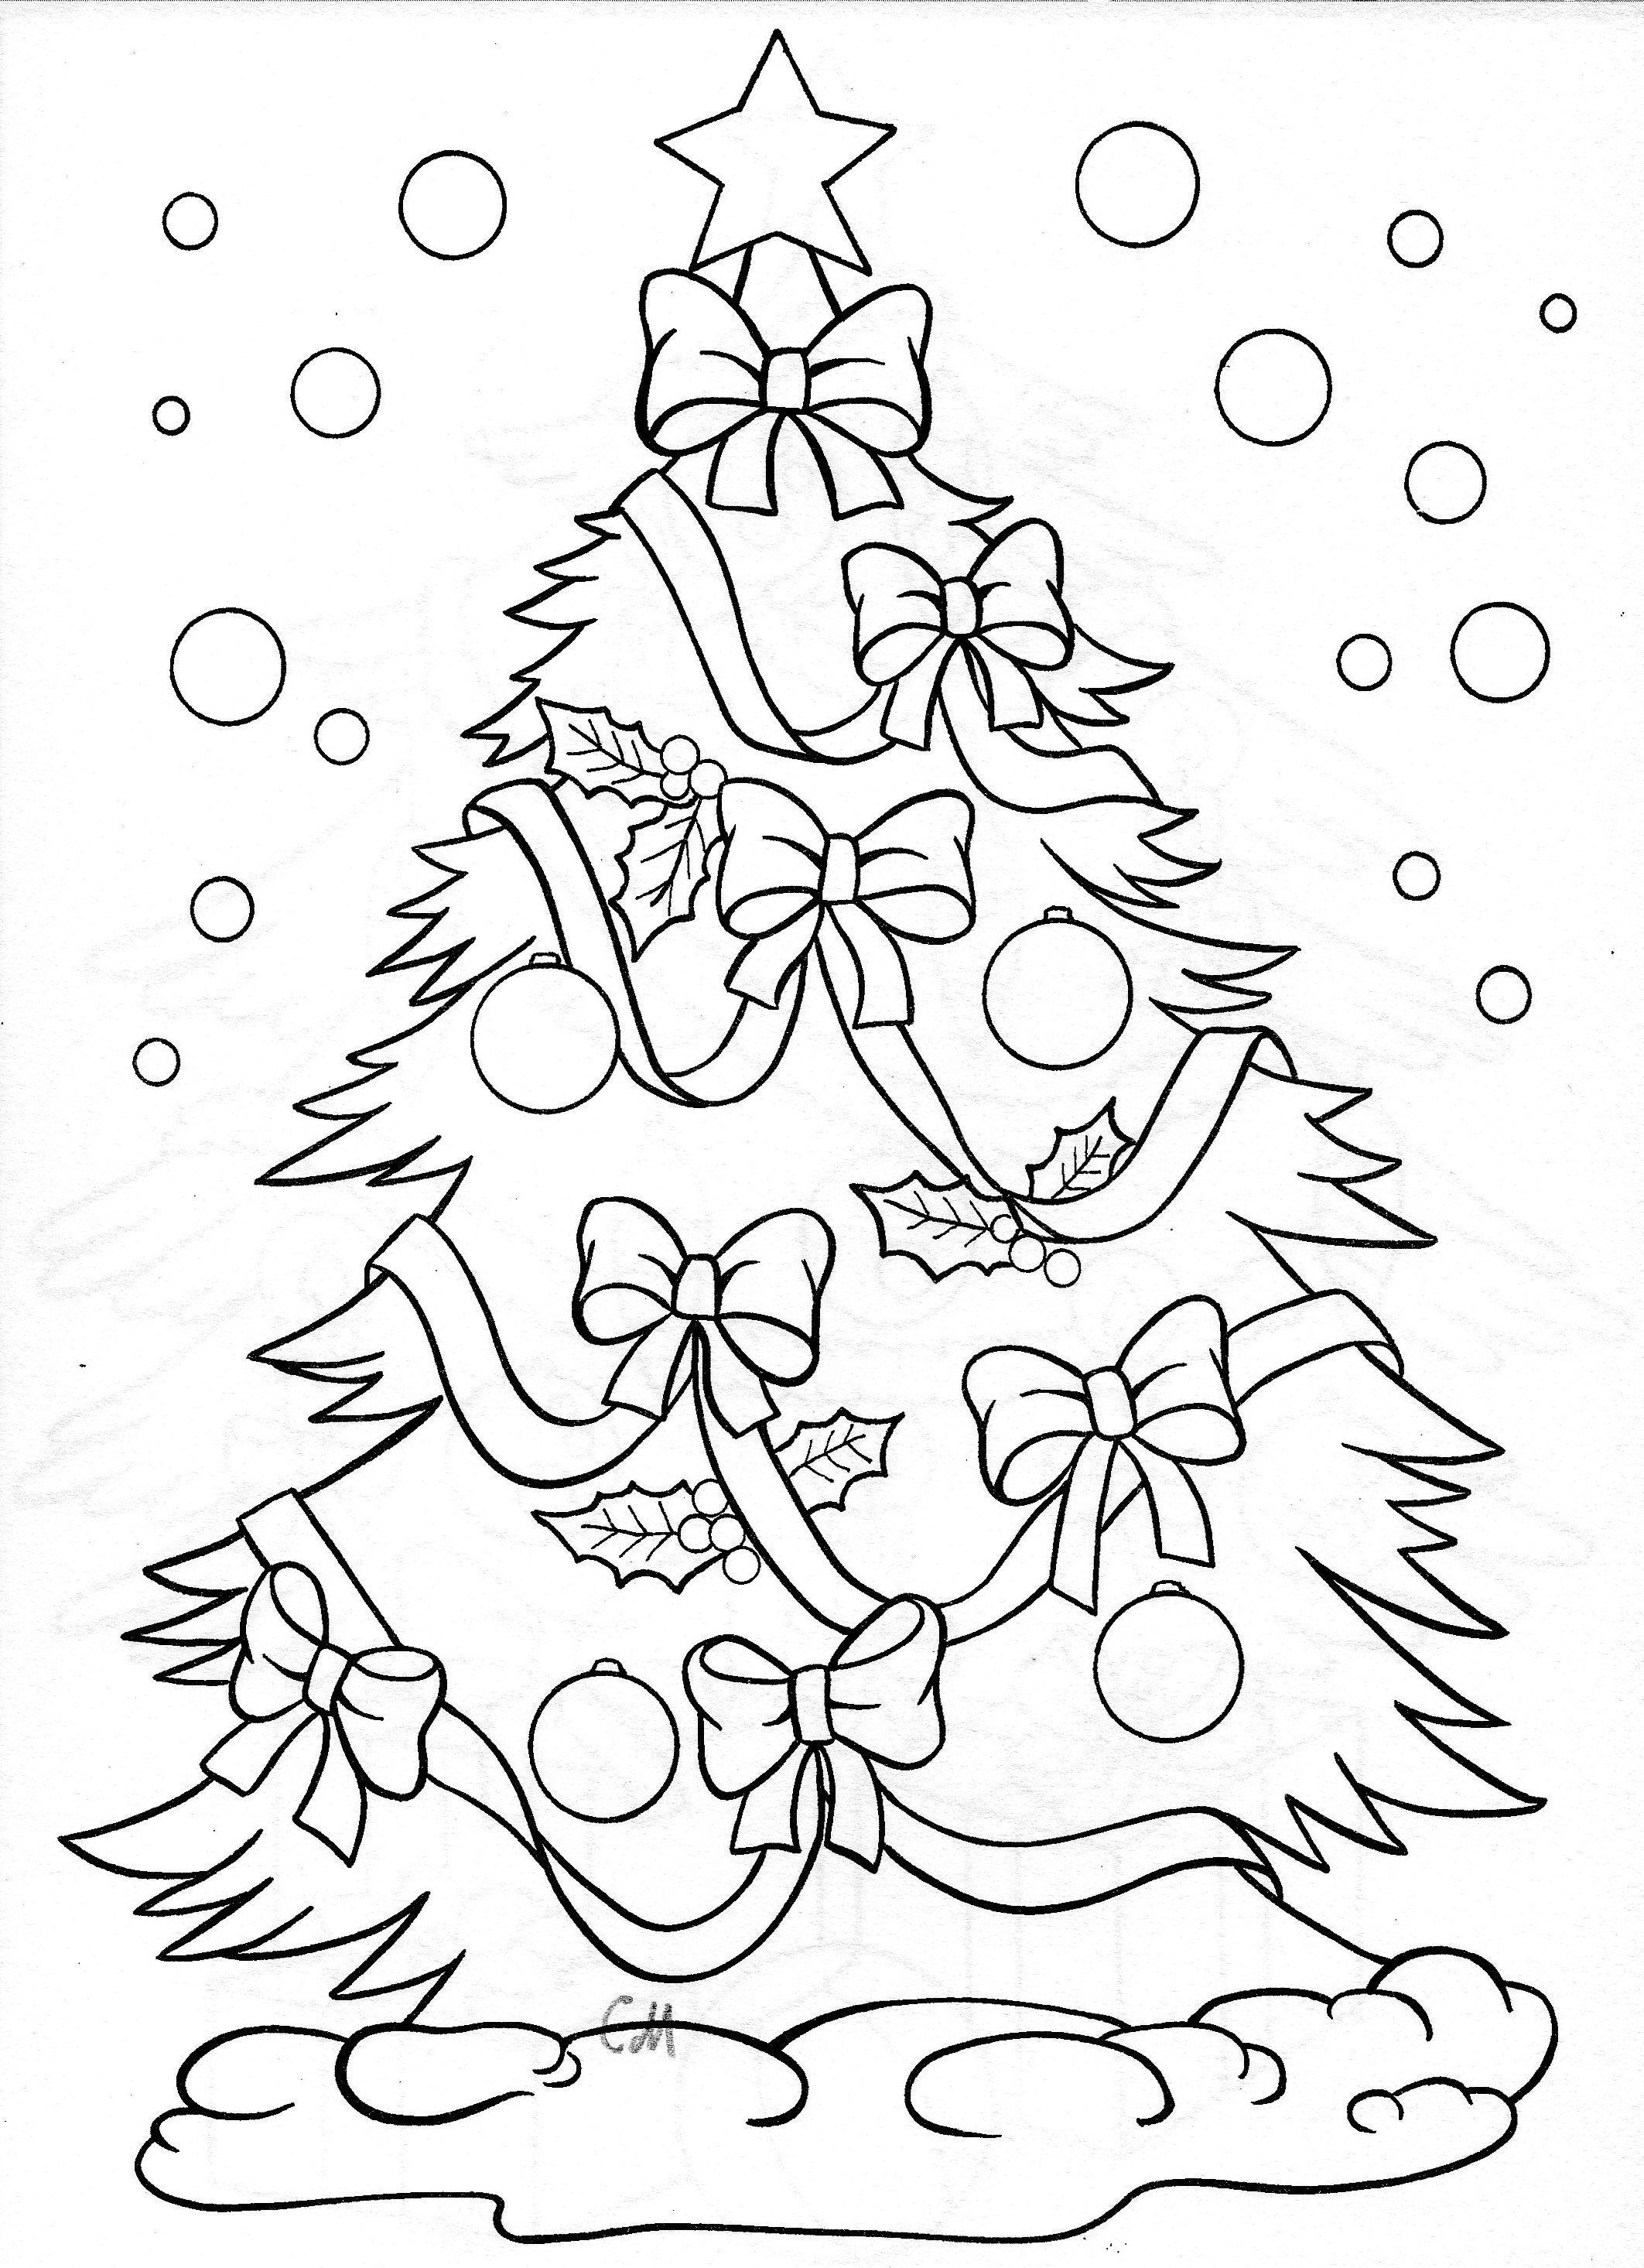 Christmas Tree Coloring Page Coloring Pages Children Pinterest Search Search Christmas Tree Coloring Page Christmas Coloring Sheets Tree Coloring Page